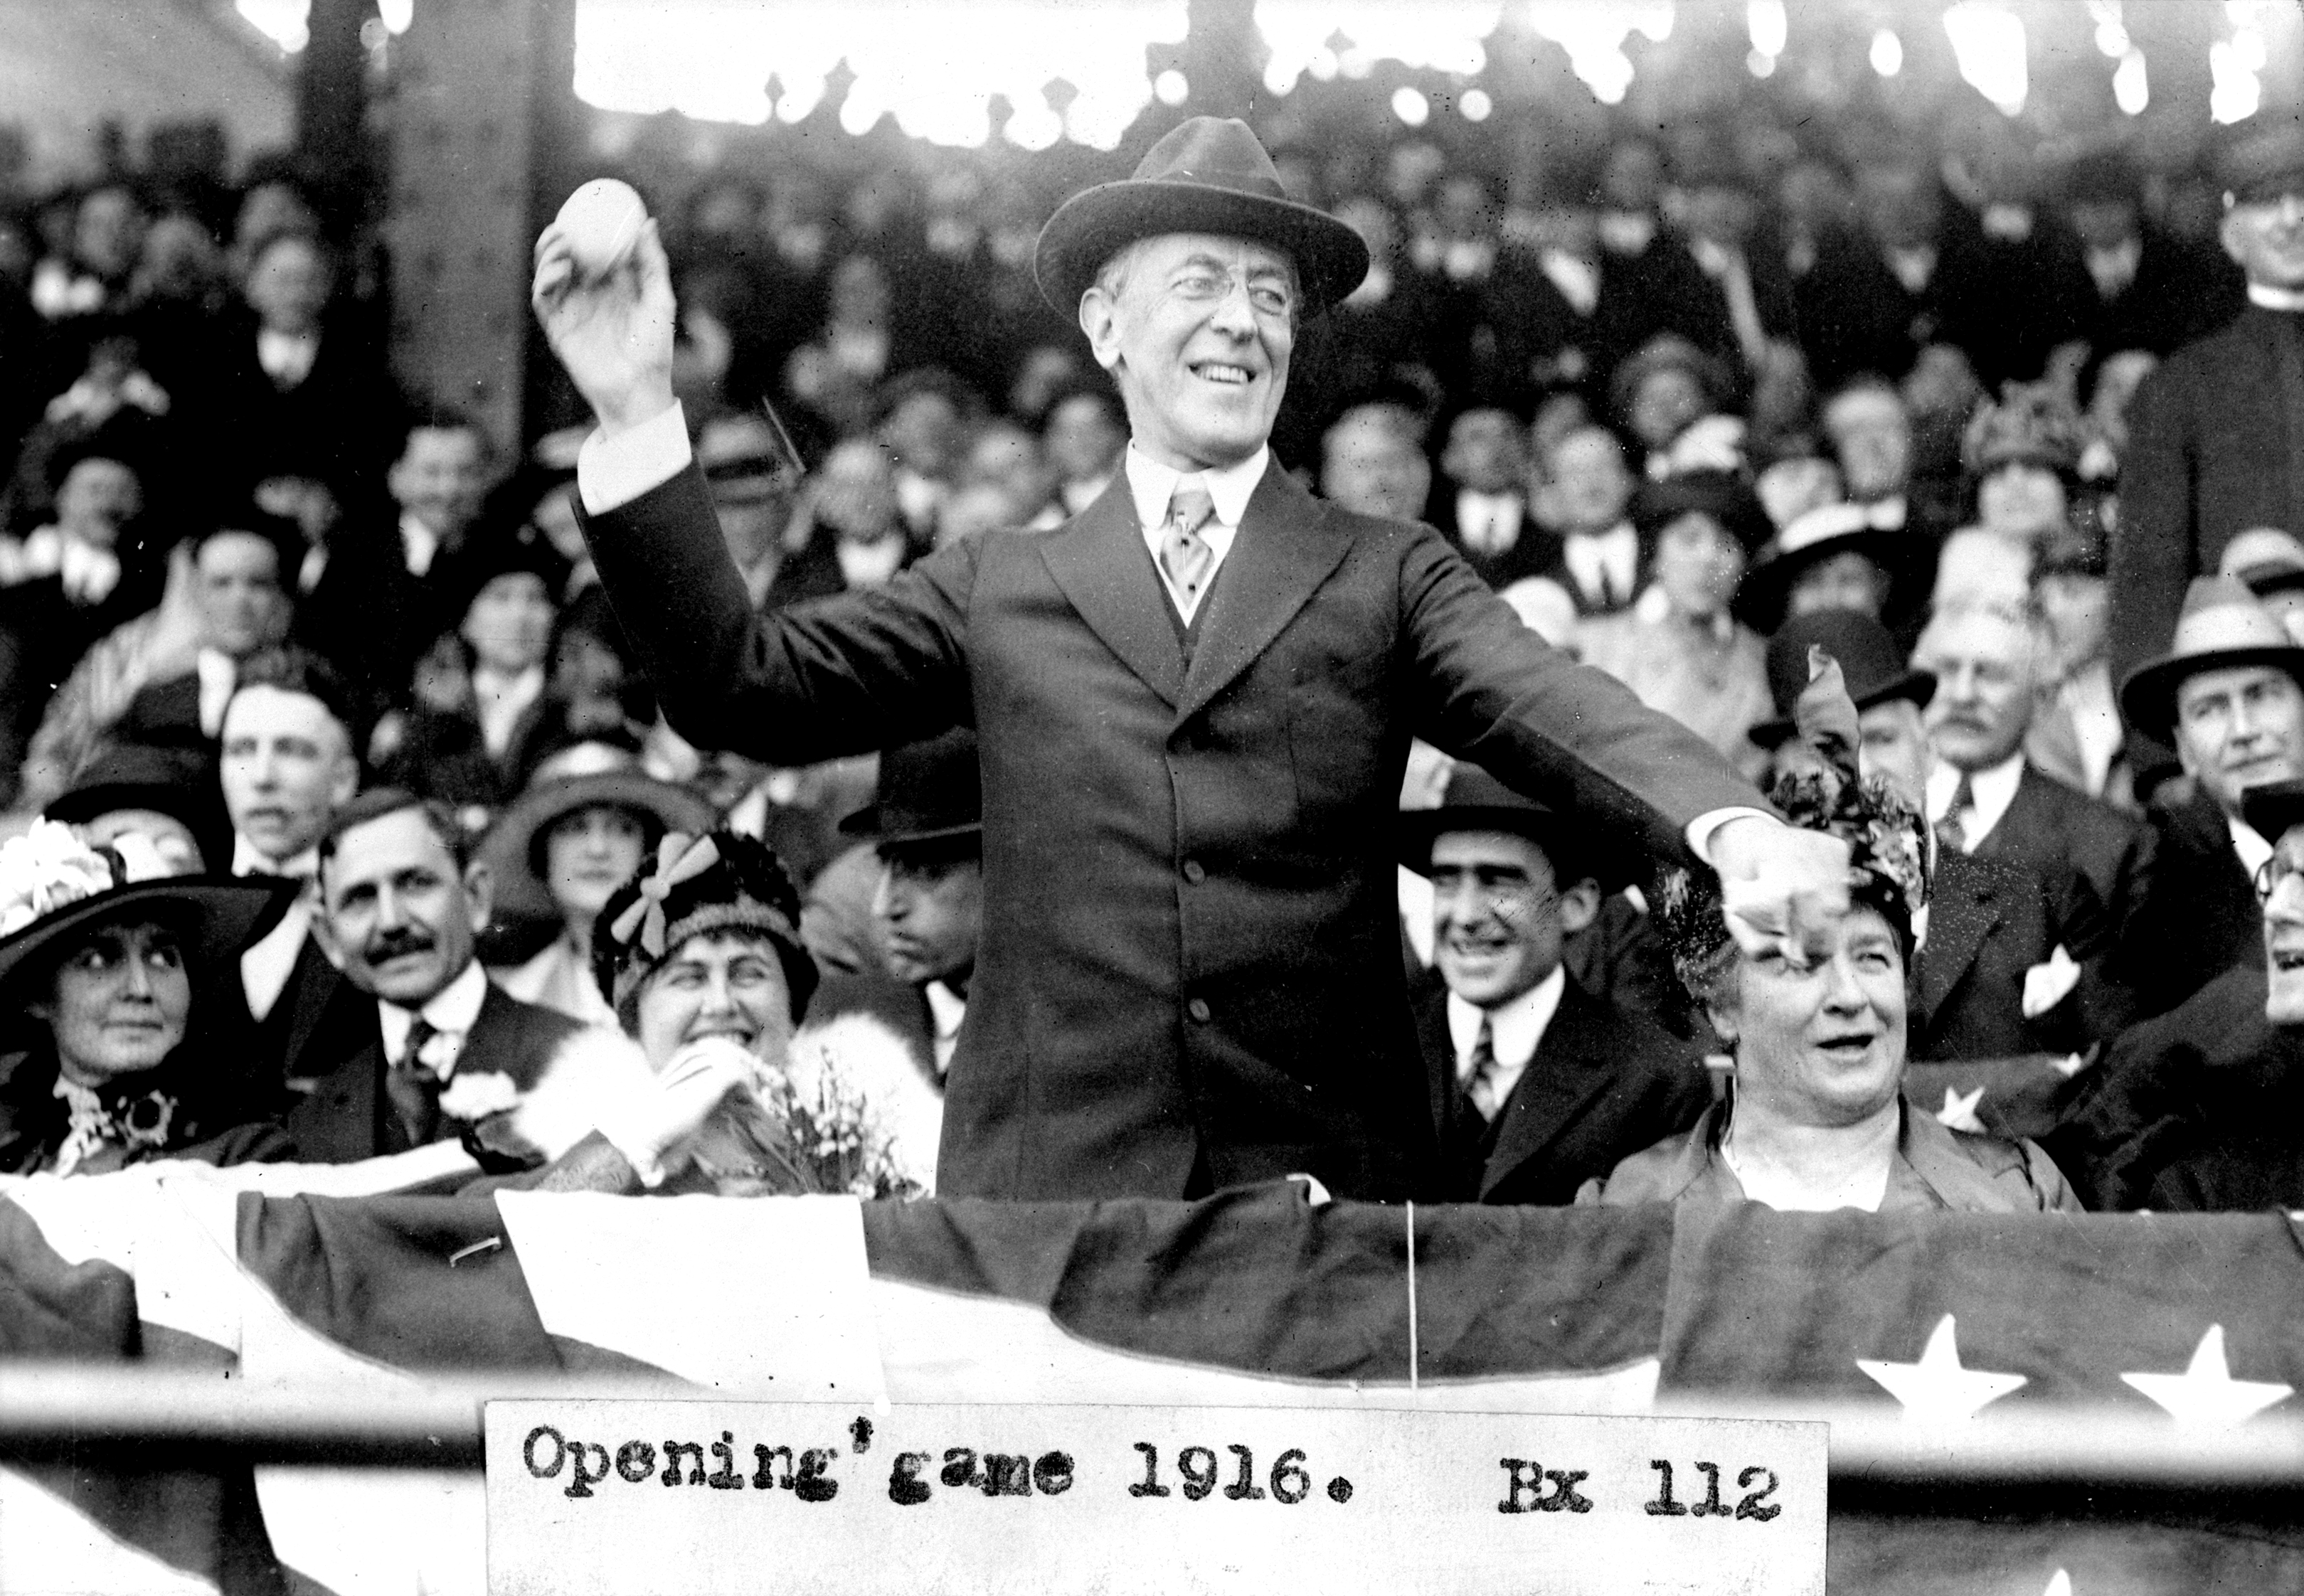 President Woodrow Wilson throwing out the ceremonial first ball on Opening Day, 1916